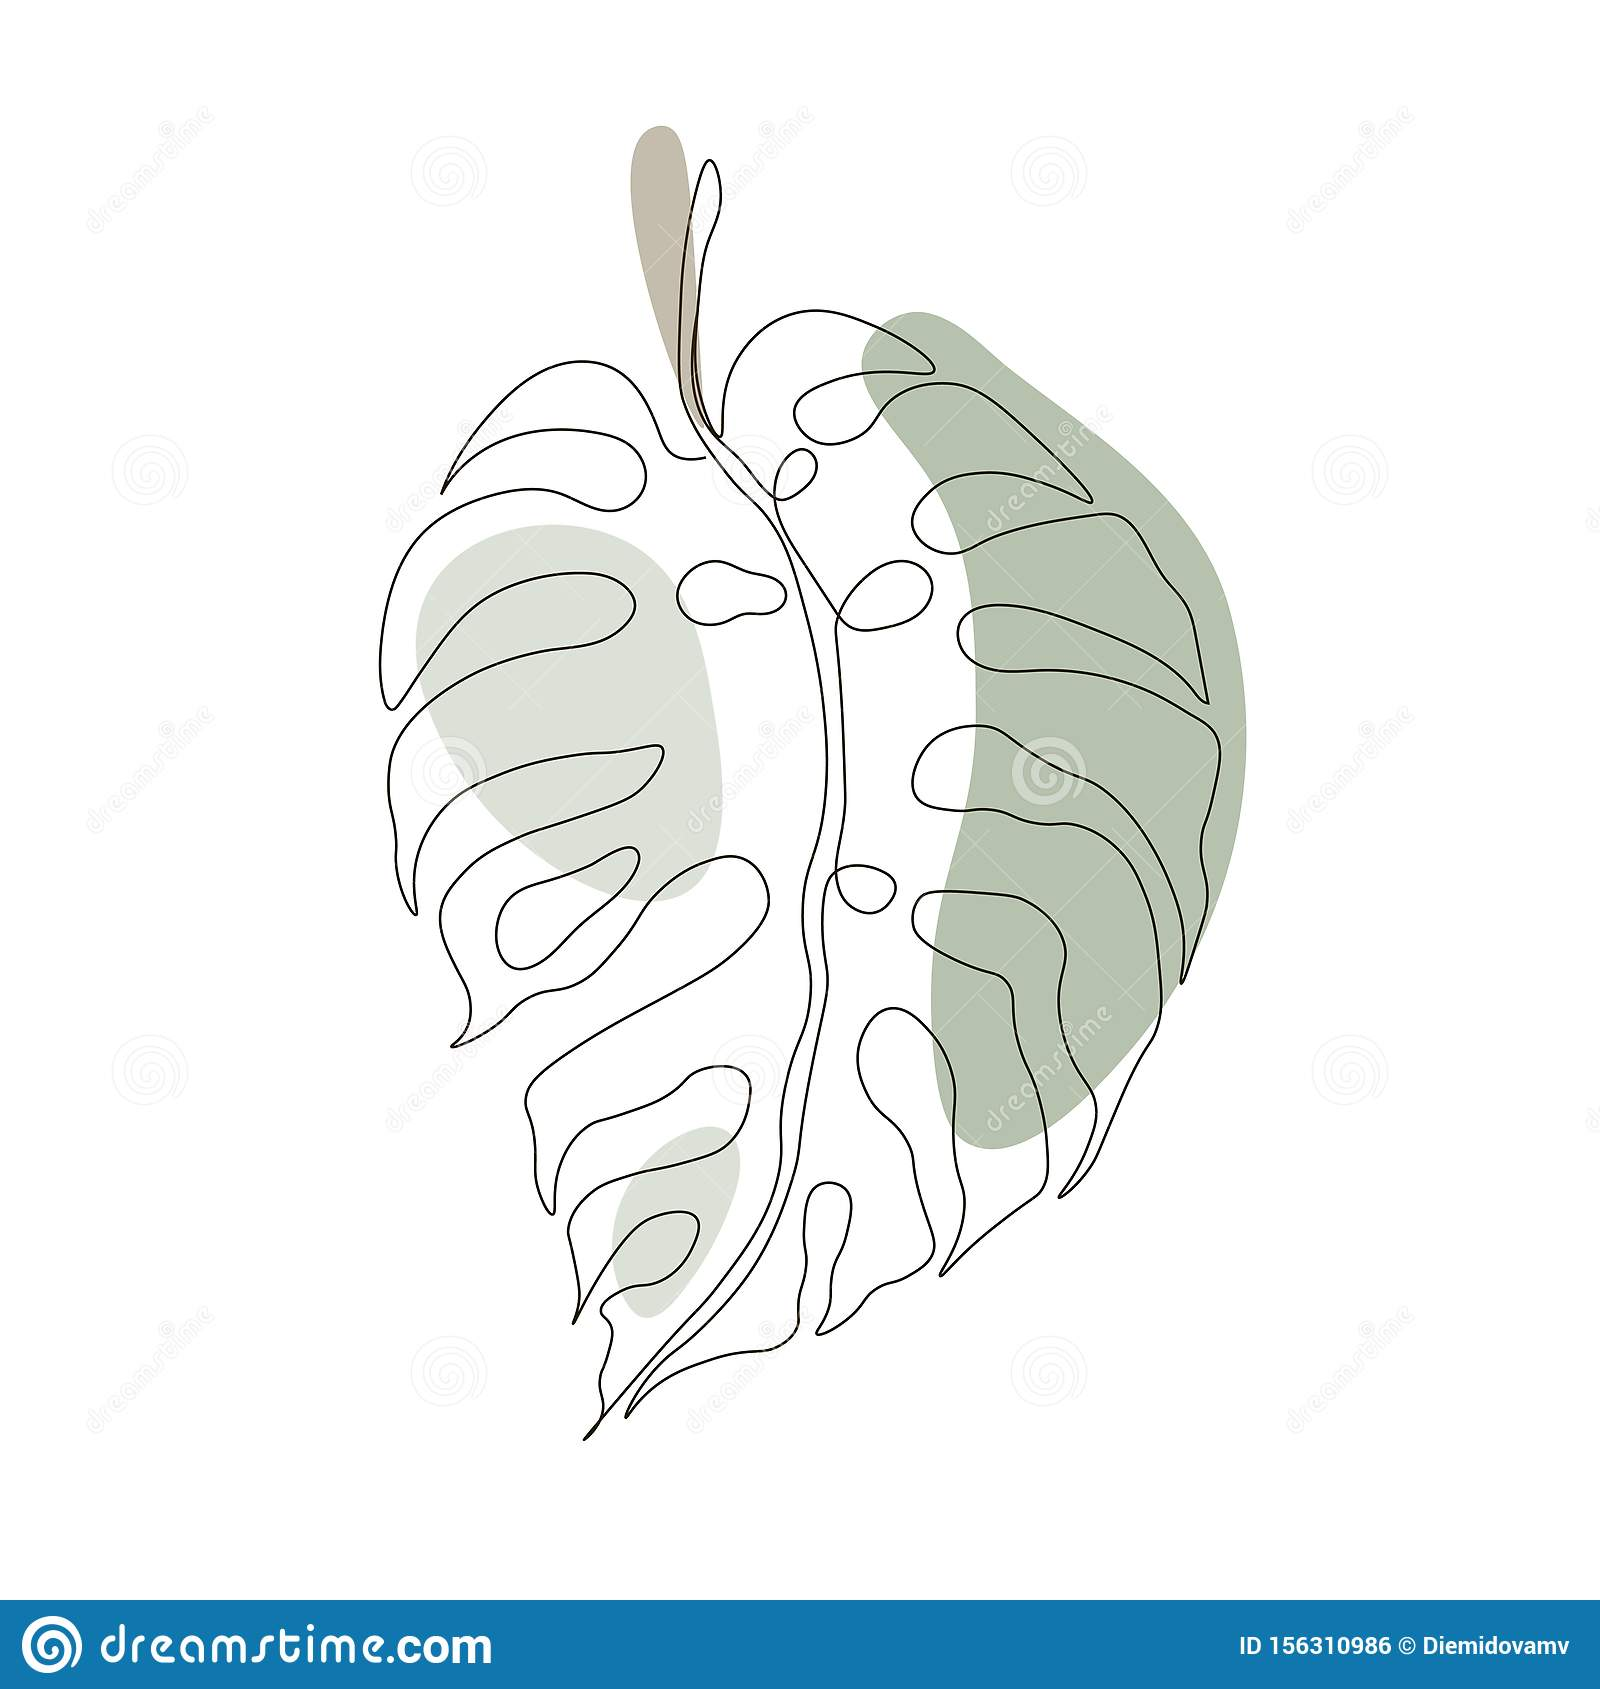 Monstera Leaf Design Stock Illustrations 33 326 Monstera Leaf Design Stock Illustrations Vectors Clipart Dreamstime Browse our collection of floral wall art prints, botanical landscapes, and plant posters. https www dreamstime com exotic monstera continuous one line drawing summer tropical leaf hand drawn white background minimalist design exotic monstera image156310986